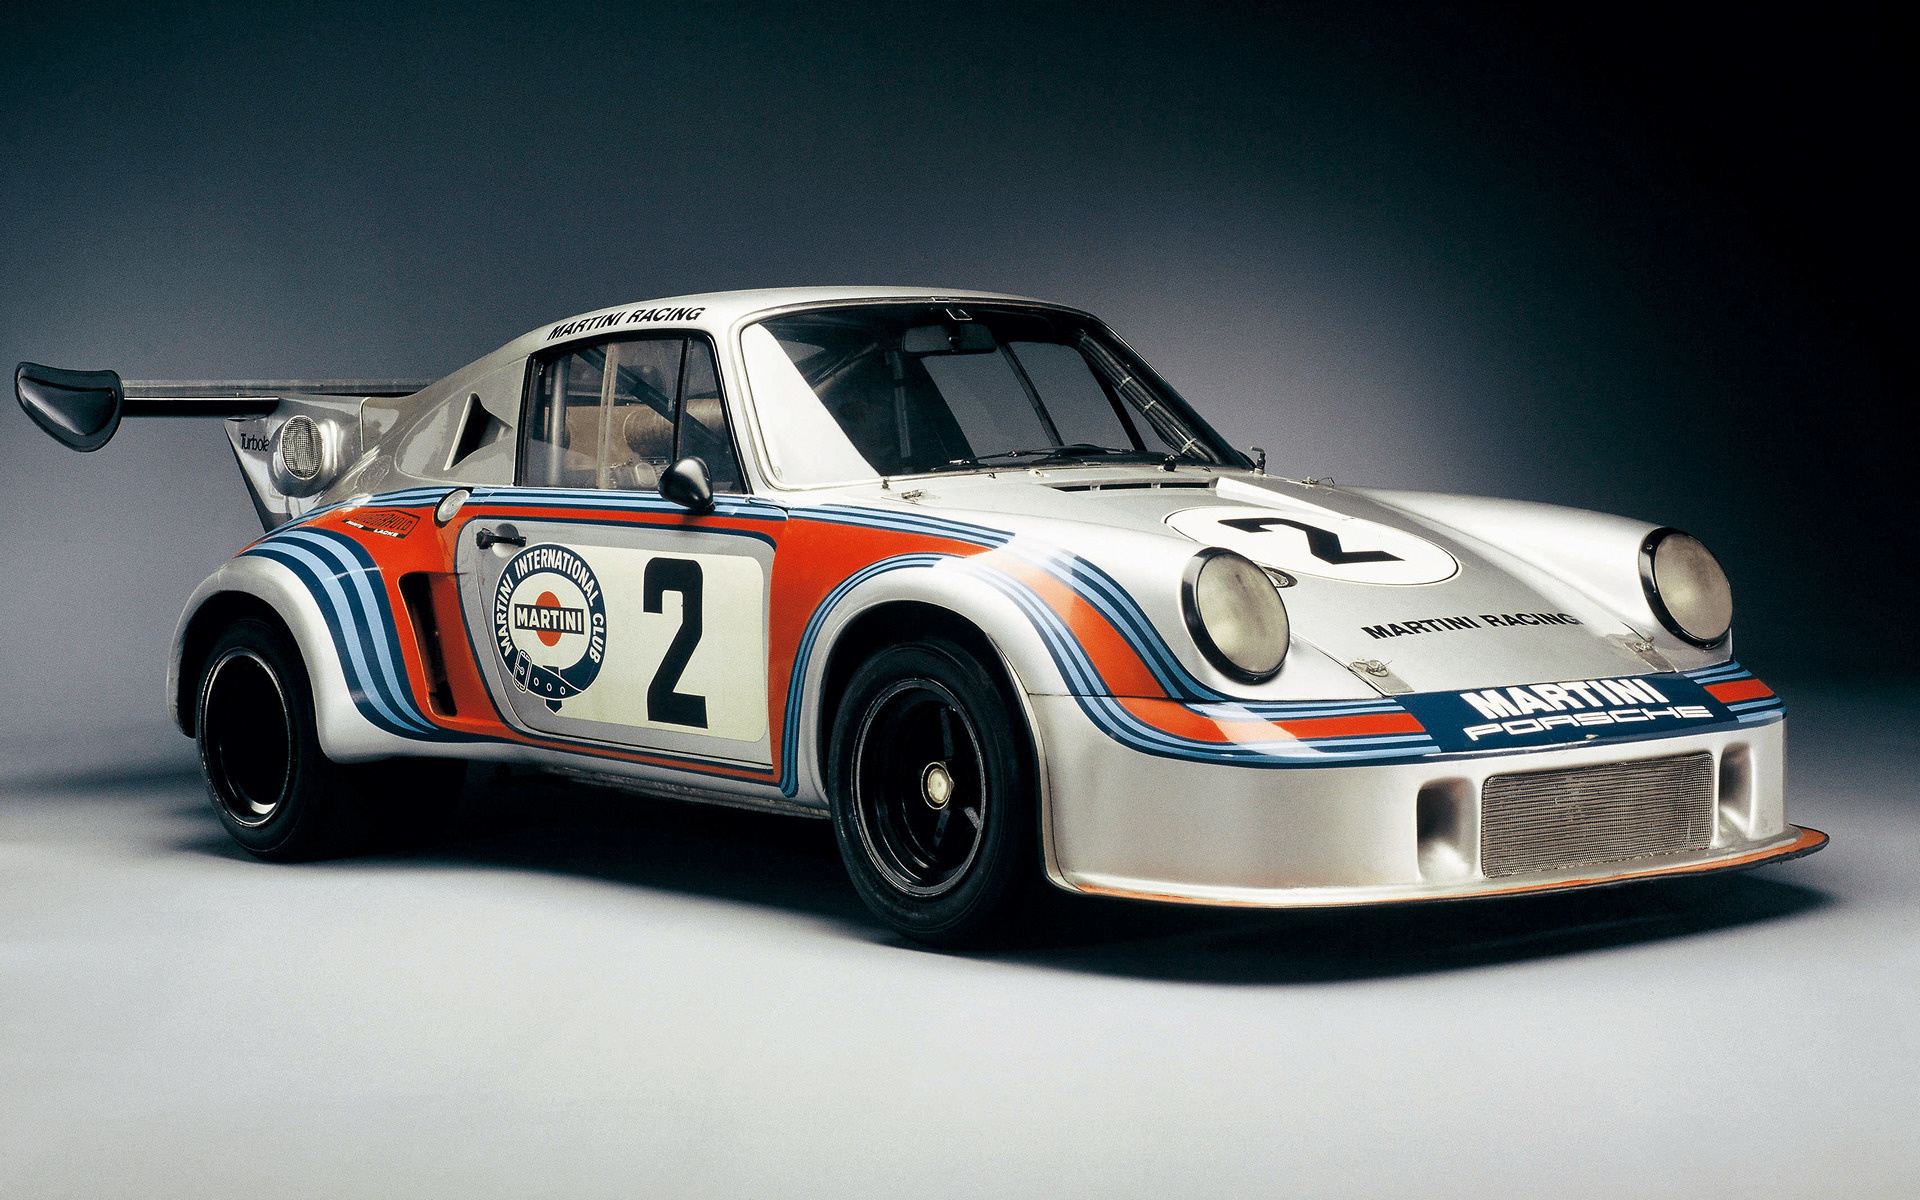 Porsche 911 Carrera RSR Turbo (1974) Wallpapers and HD Images - Car on 2014 porsche 911 rsr, 1970 porsche 911 t rsr, 1971 porsche 911 rsr, porsche boxster rsr, porsche 911 rs, porsche 918 rsr, porsche carrera gt, 1976 porsche 911 rsr, black porsche 911 rsr, porsche 911 2.7 rsr, dolphin grey porsche 911 rsr, porsche 911 rsr 3.8, porsche 964 rsr, porsche 911 rally, porsche 934 rsr, porsche 930 rsr, 2015 porsche 911 rsr, 1974 porsche rsr, porsche 911 gt3 exhaust,